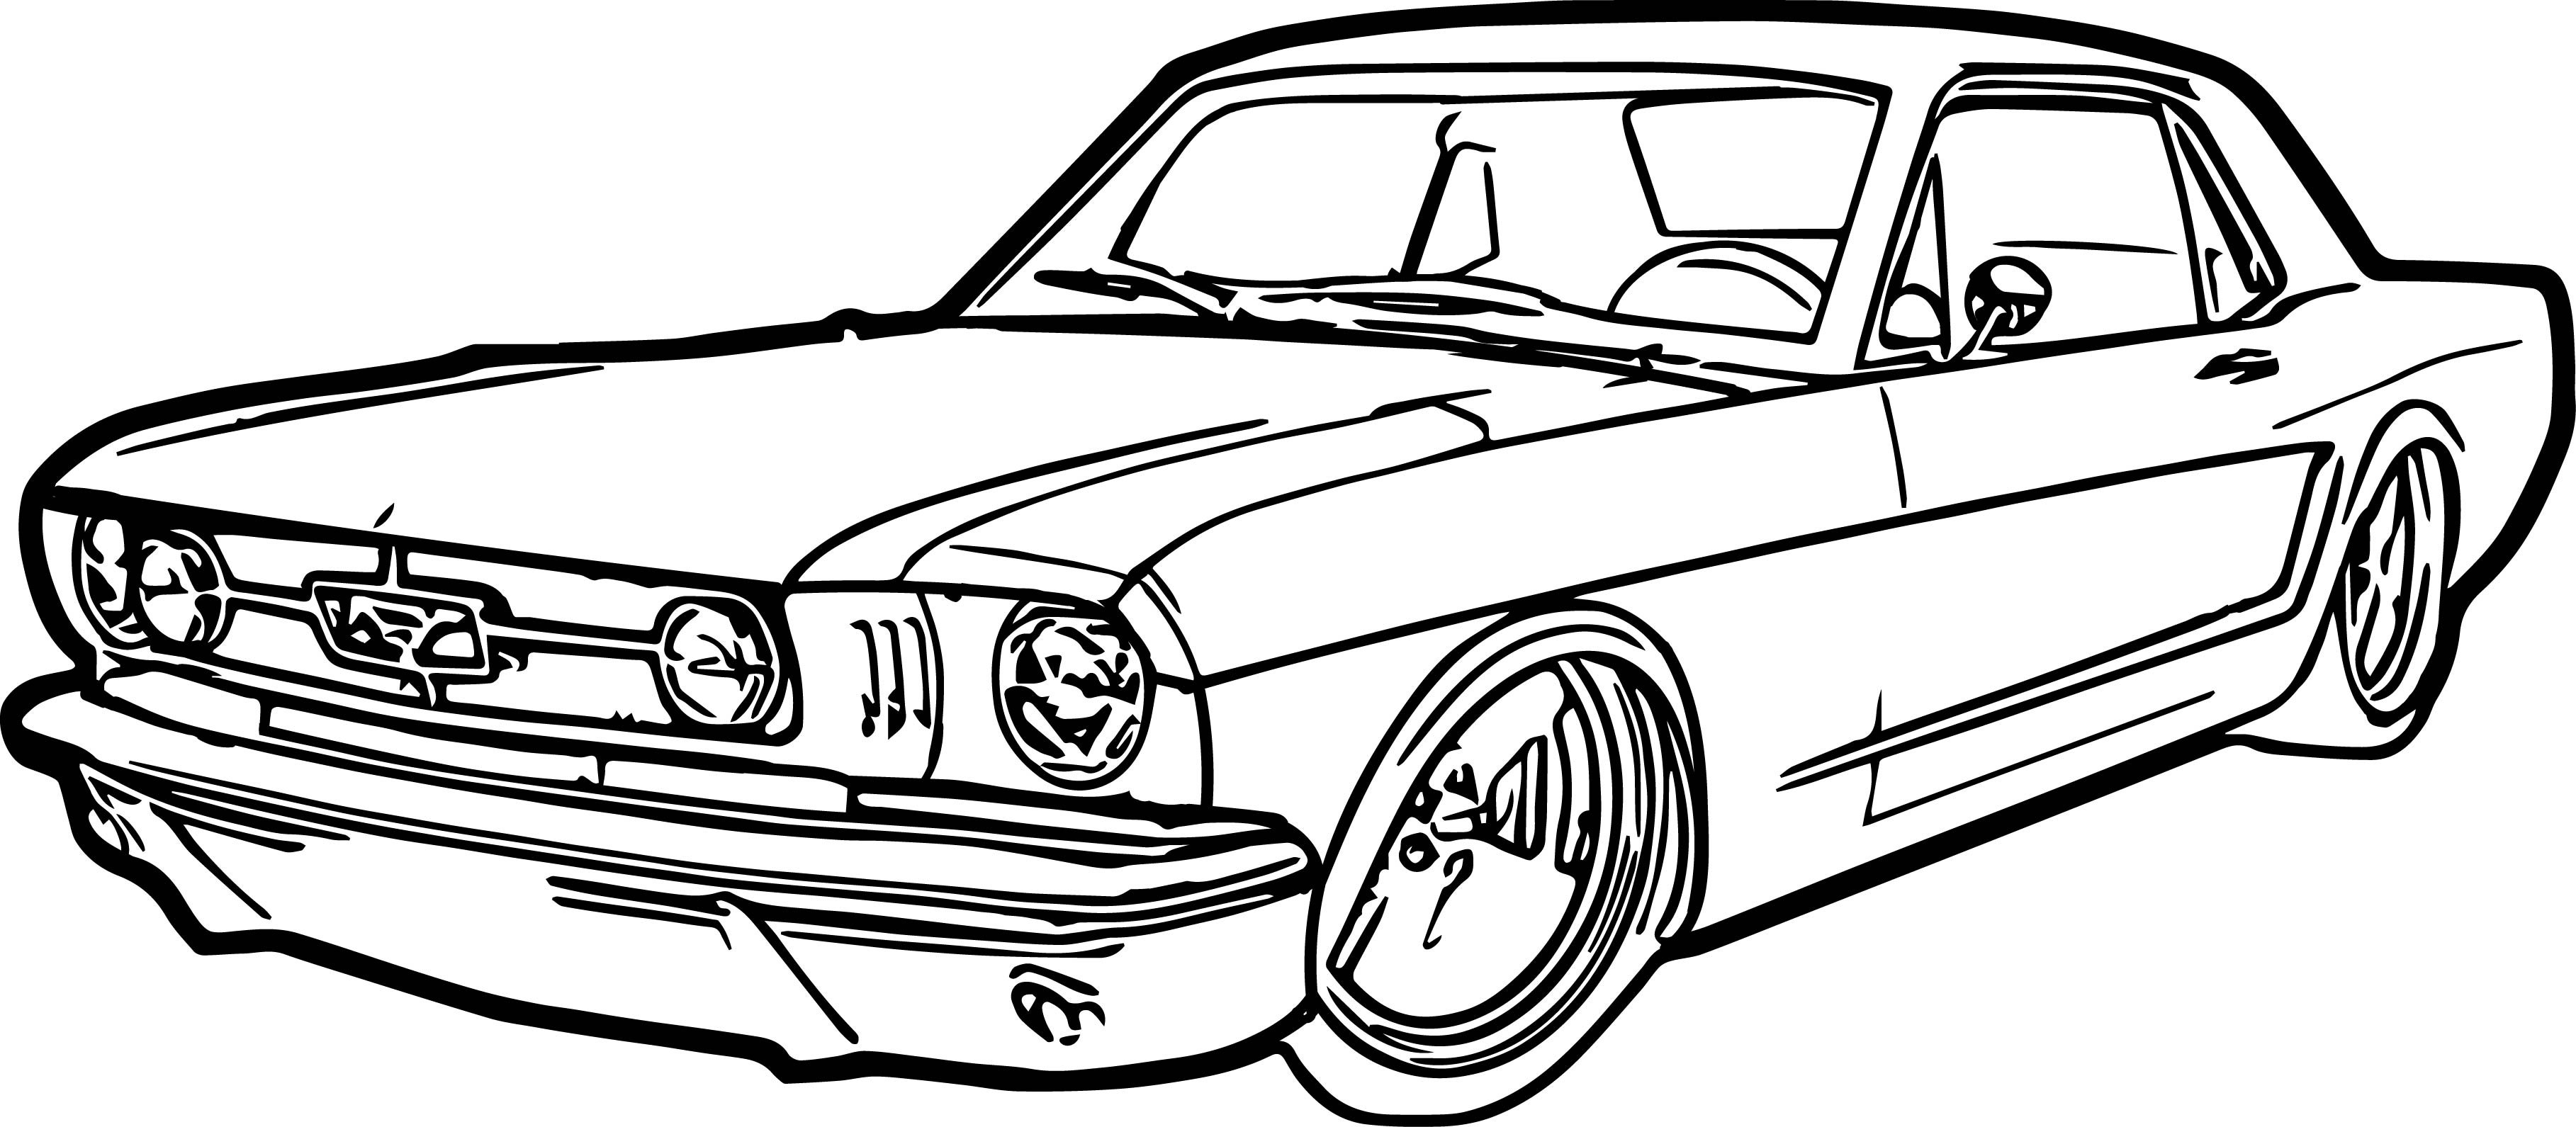 Ford Mustang Car Coloring Page Wecoloringpage